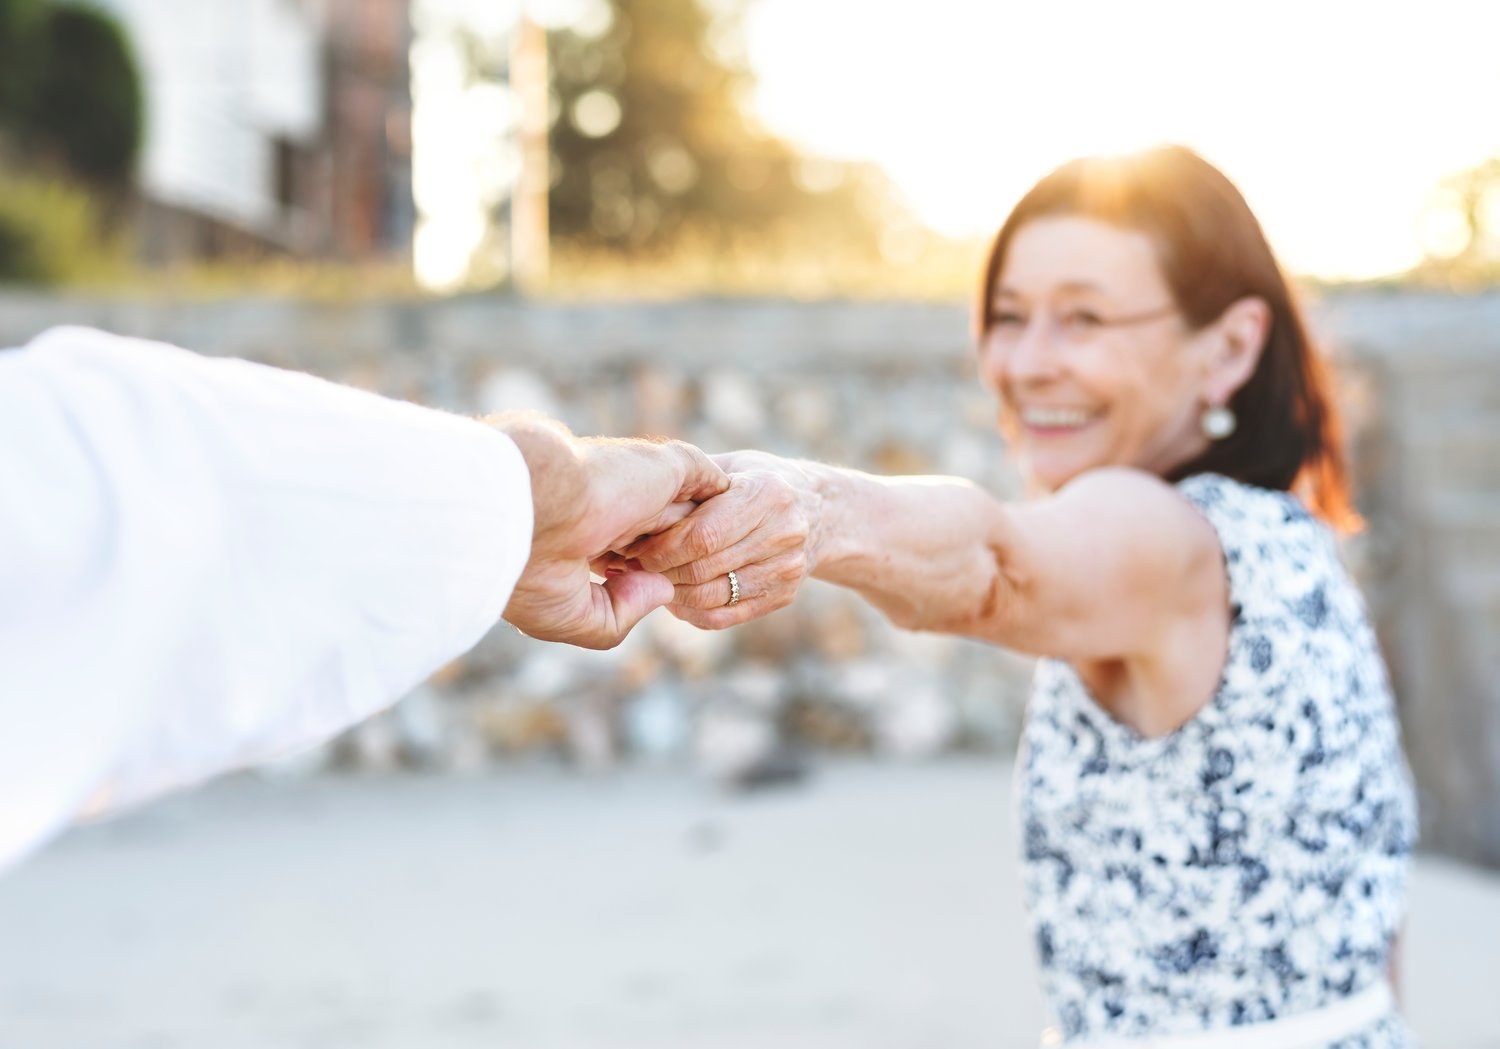 What the Spouse or Close Partner of Someone Diagnosed with Parkinson's Should Know